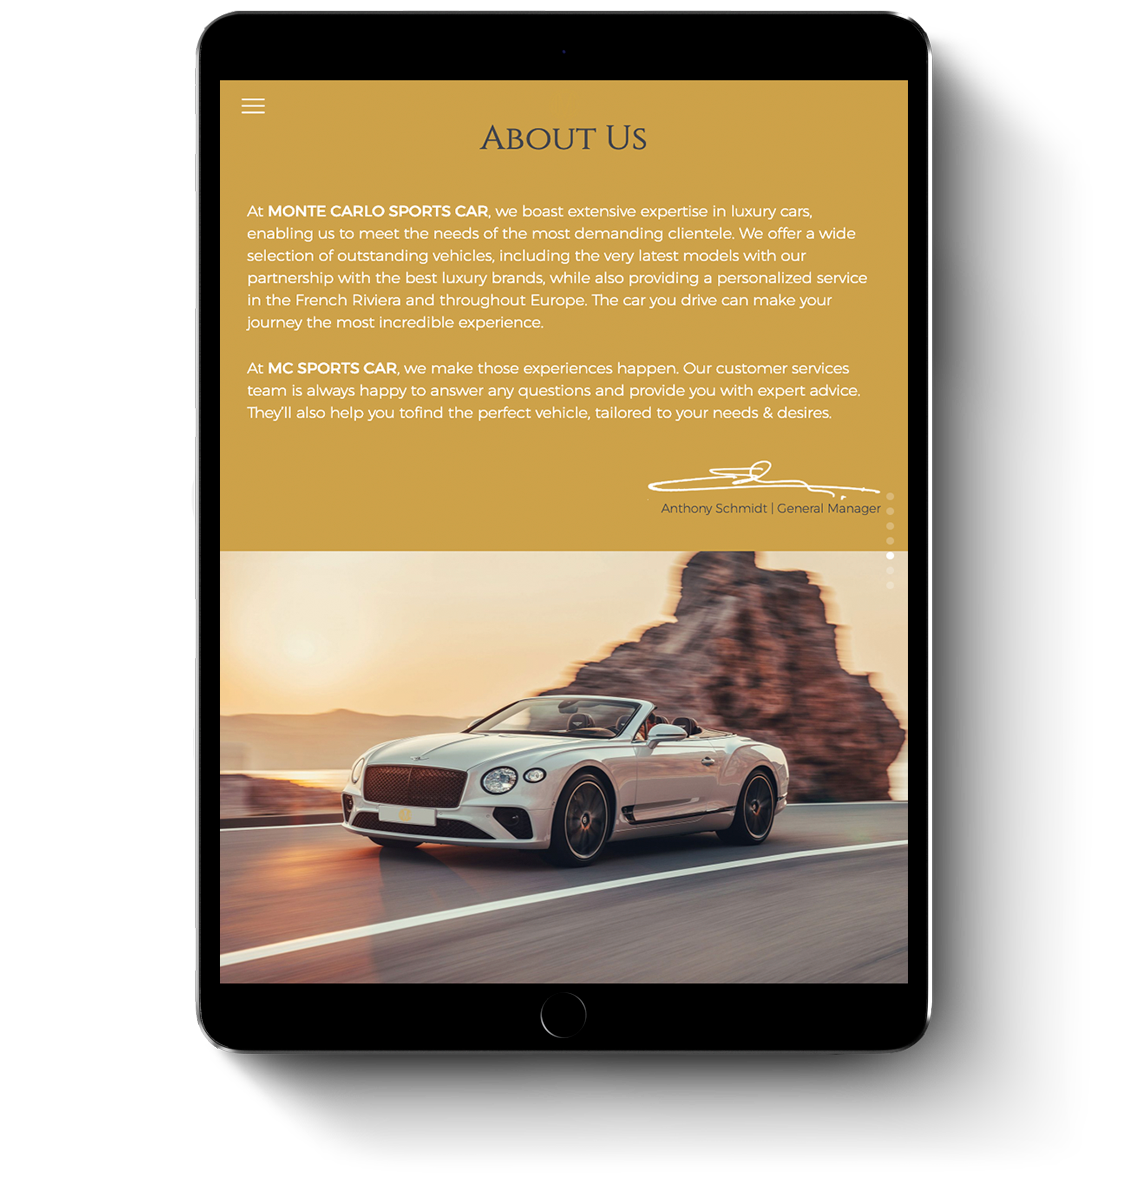 Monte Carlo Sports Car web design for mobile devices and tablets